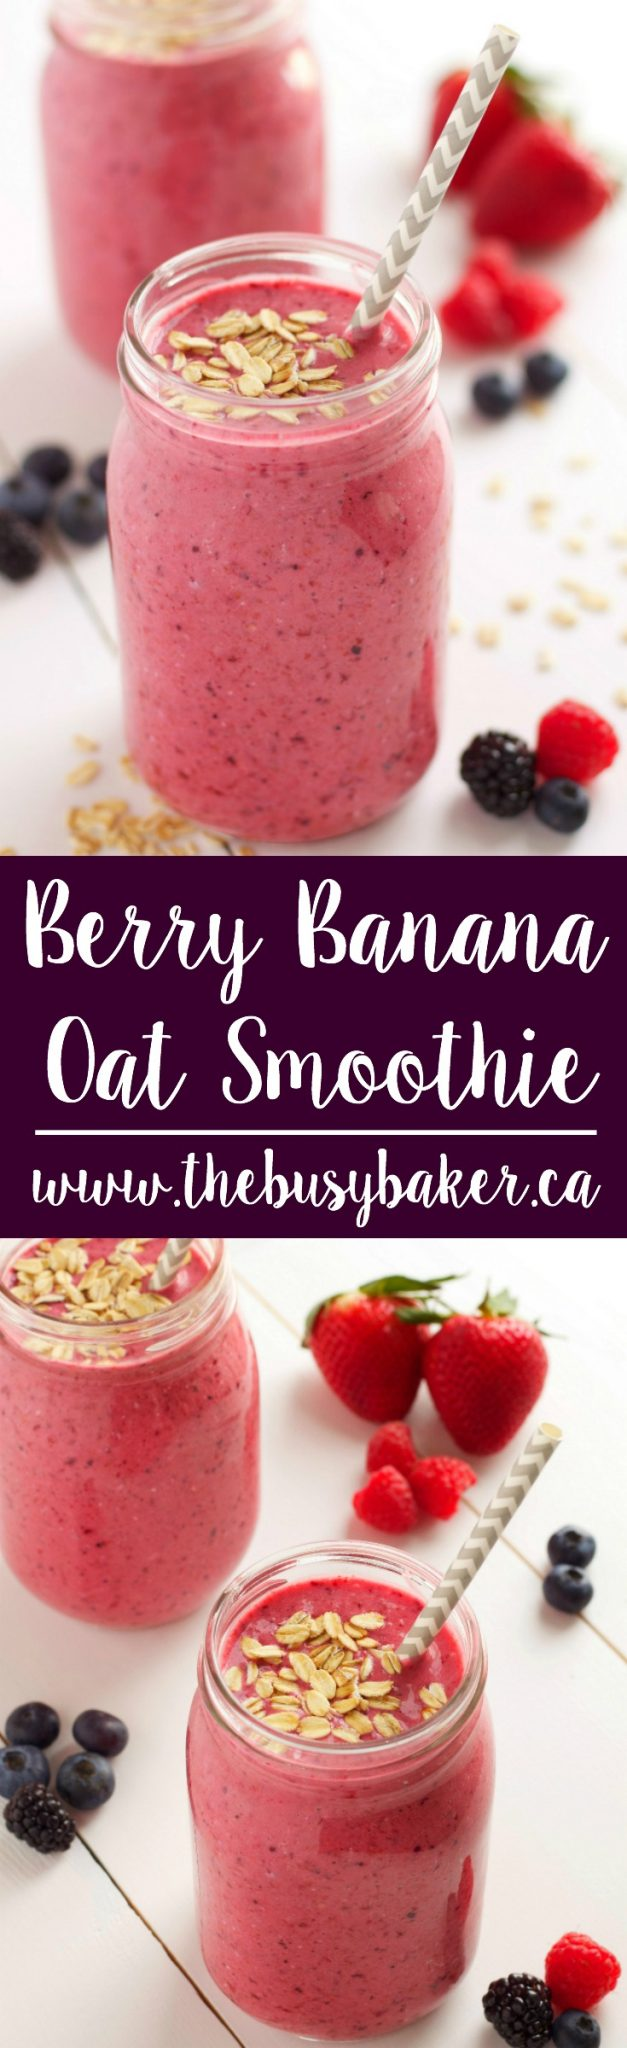 This Berry Banana Oat Smoothie is the perfect dairy-free breakfast full of delicious fruit and a healthy dose of whole grains! Recipe from thebusybaker.ca! #glutenfree #berrybananasmoothie #easybreakfast #fibersmoothie via @busybakerblog